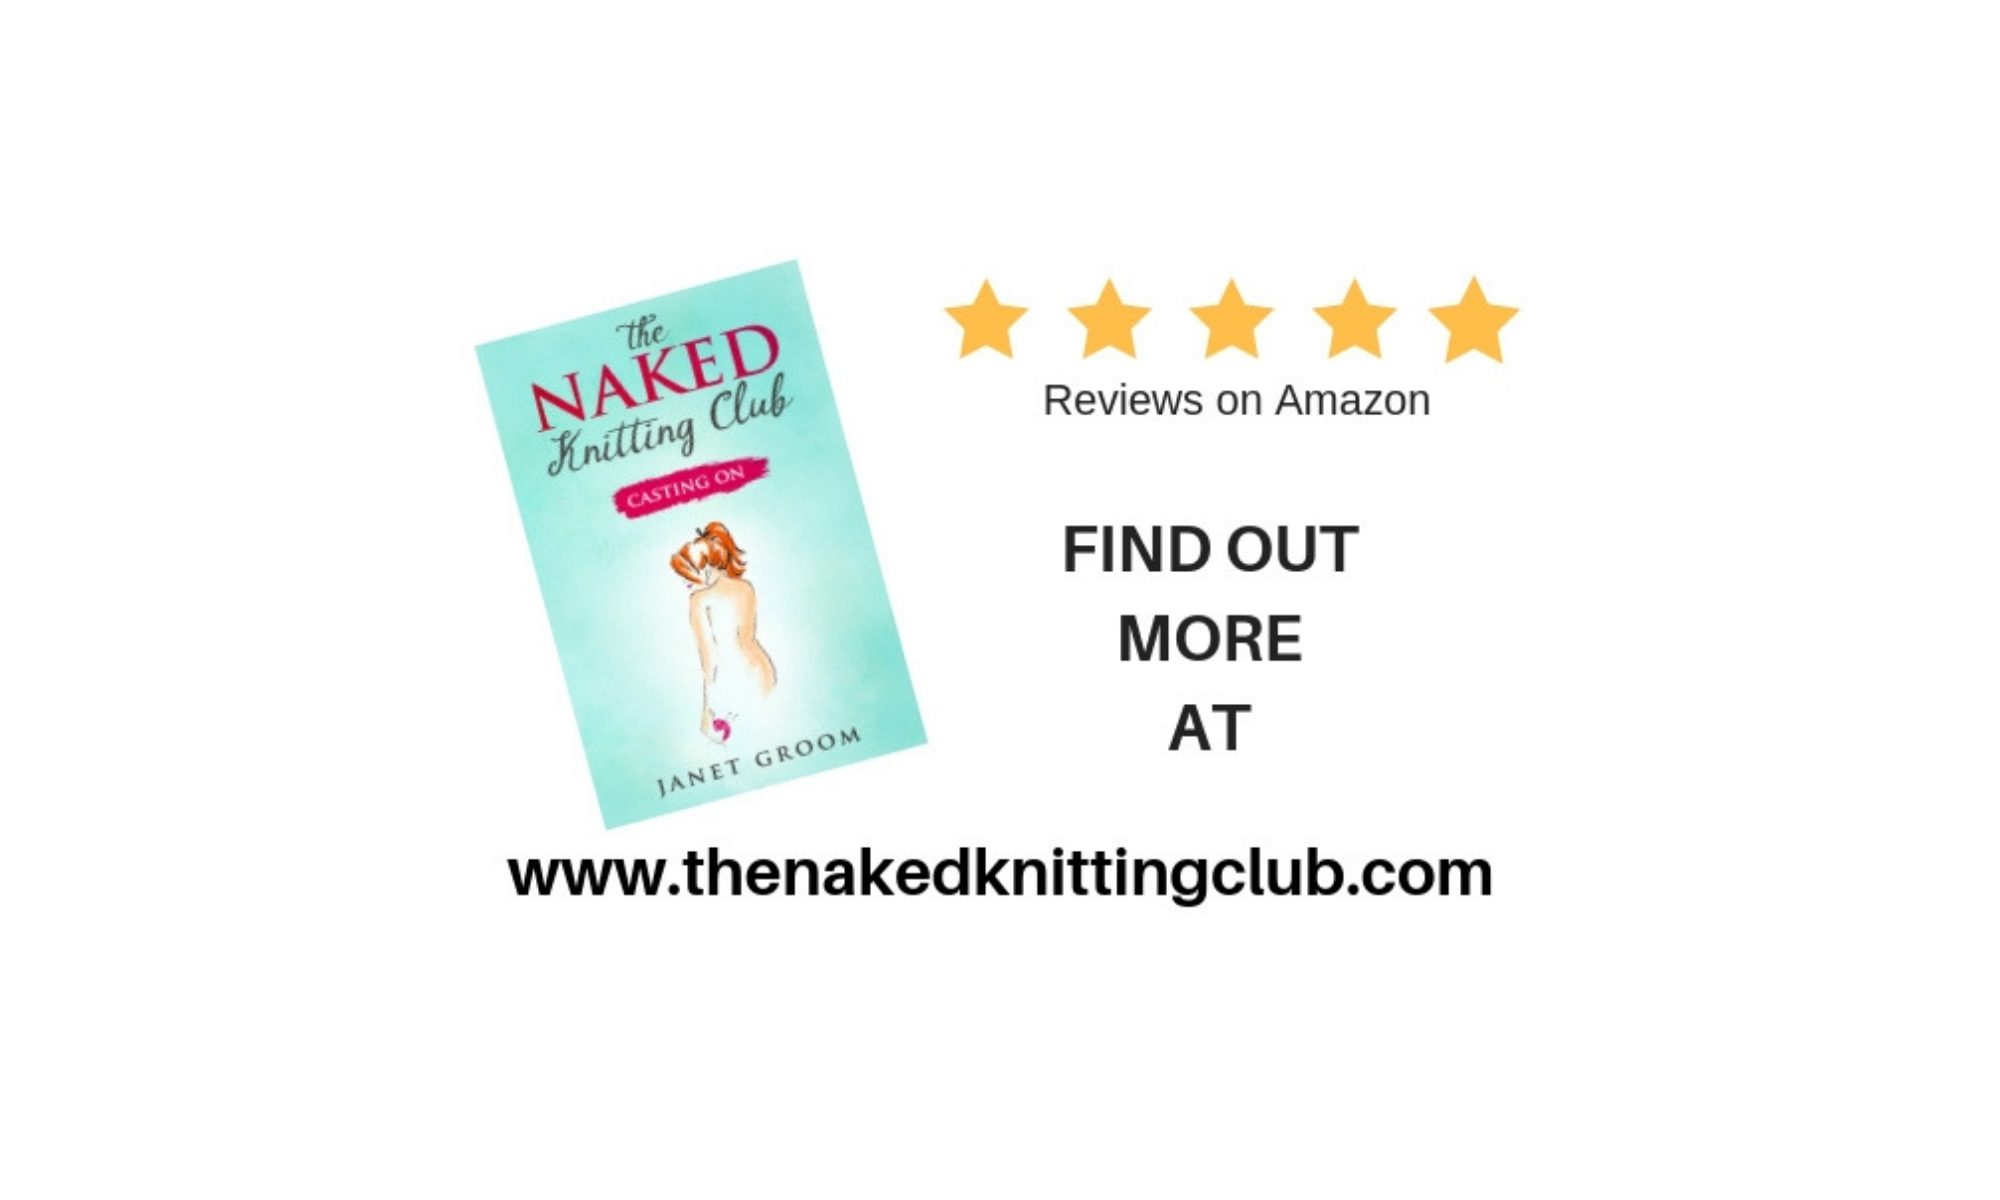 The Naked Knitting Club